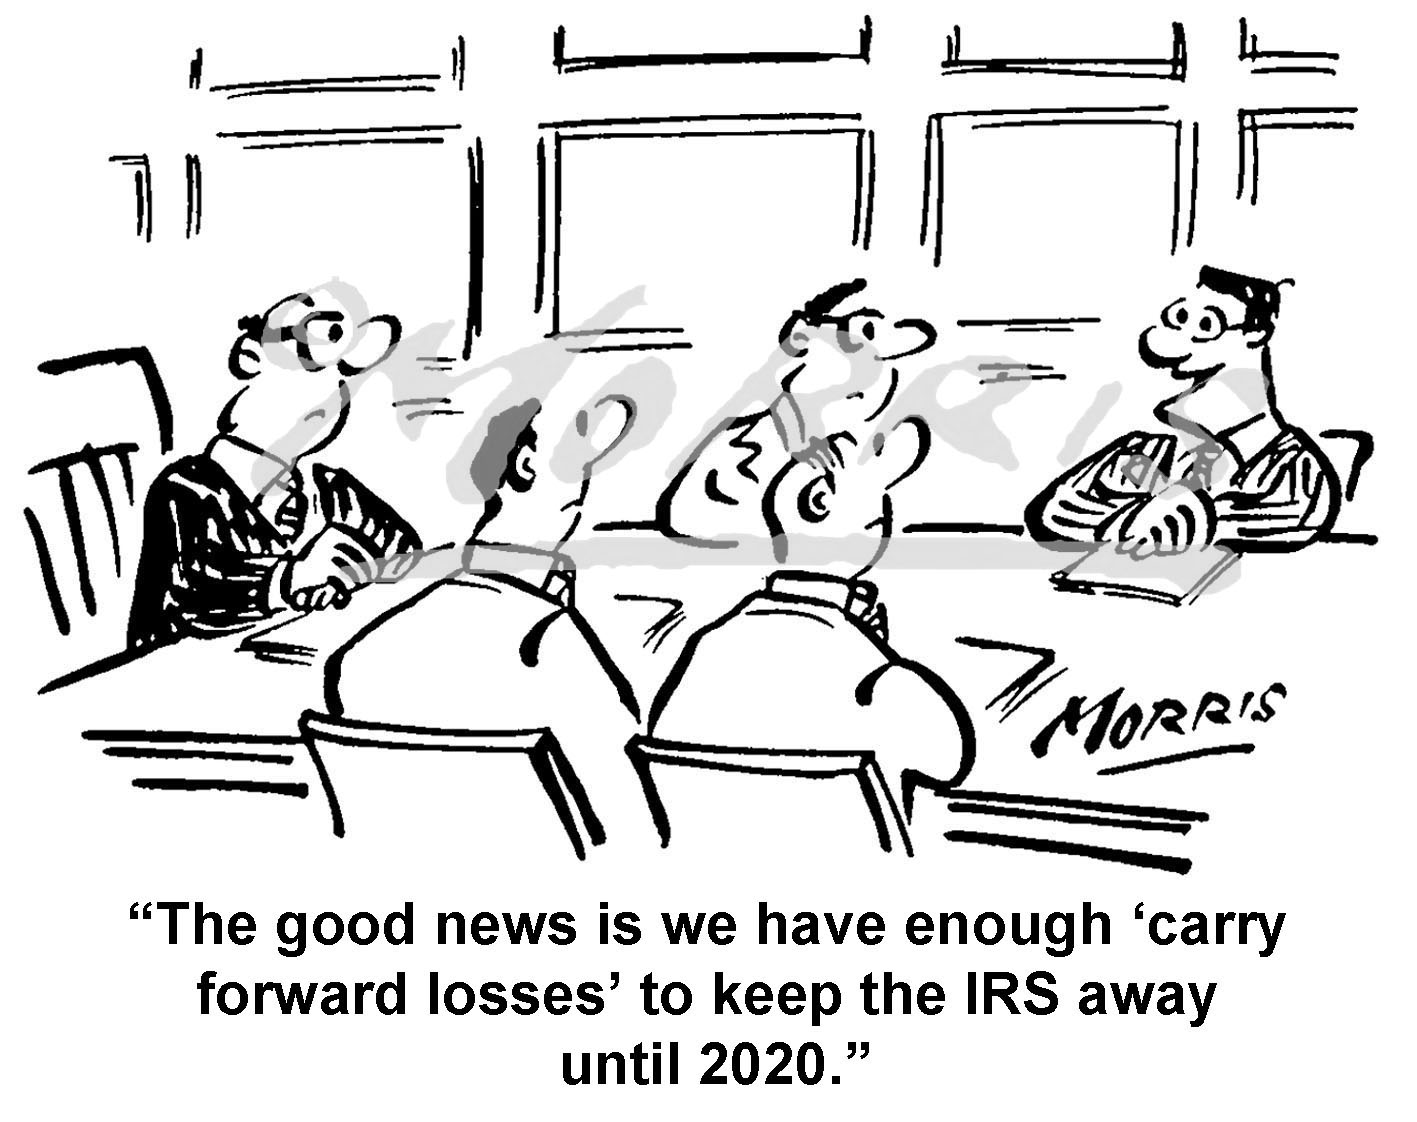 Boardroom cartoon, IRS cartoon, tax audit comic – Ref: 1499bwus